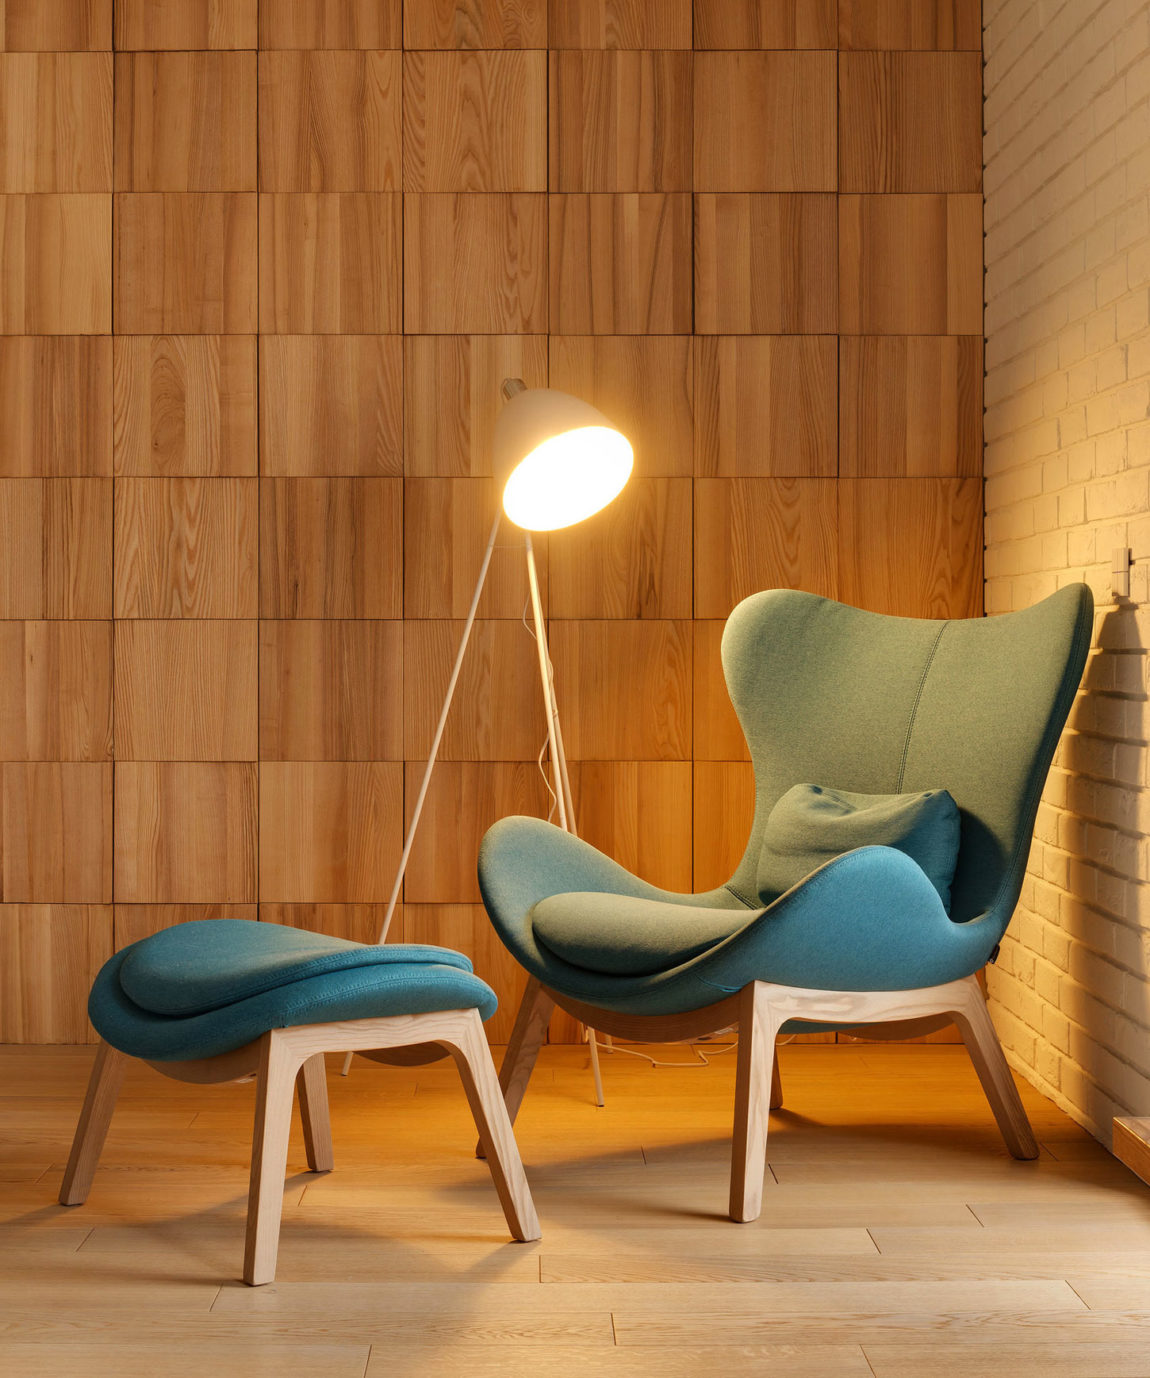 Apartment with a Slide by KI Design (3)